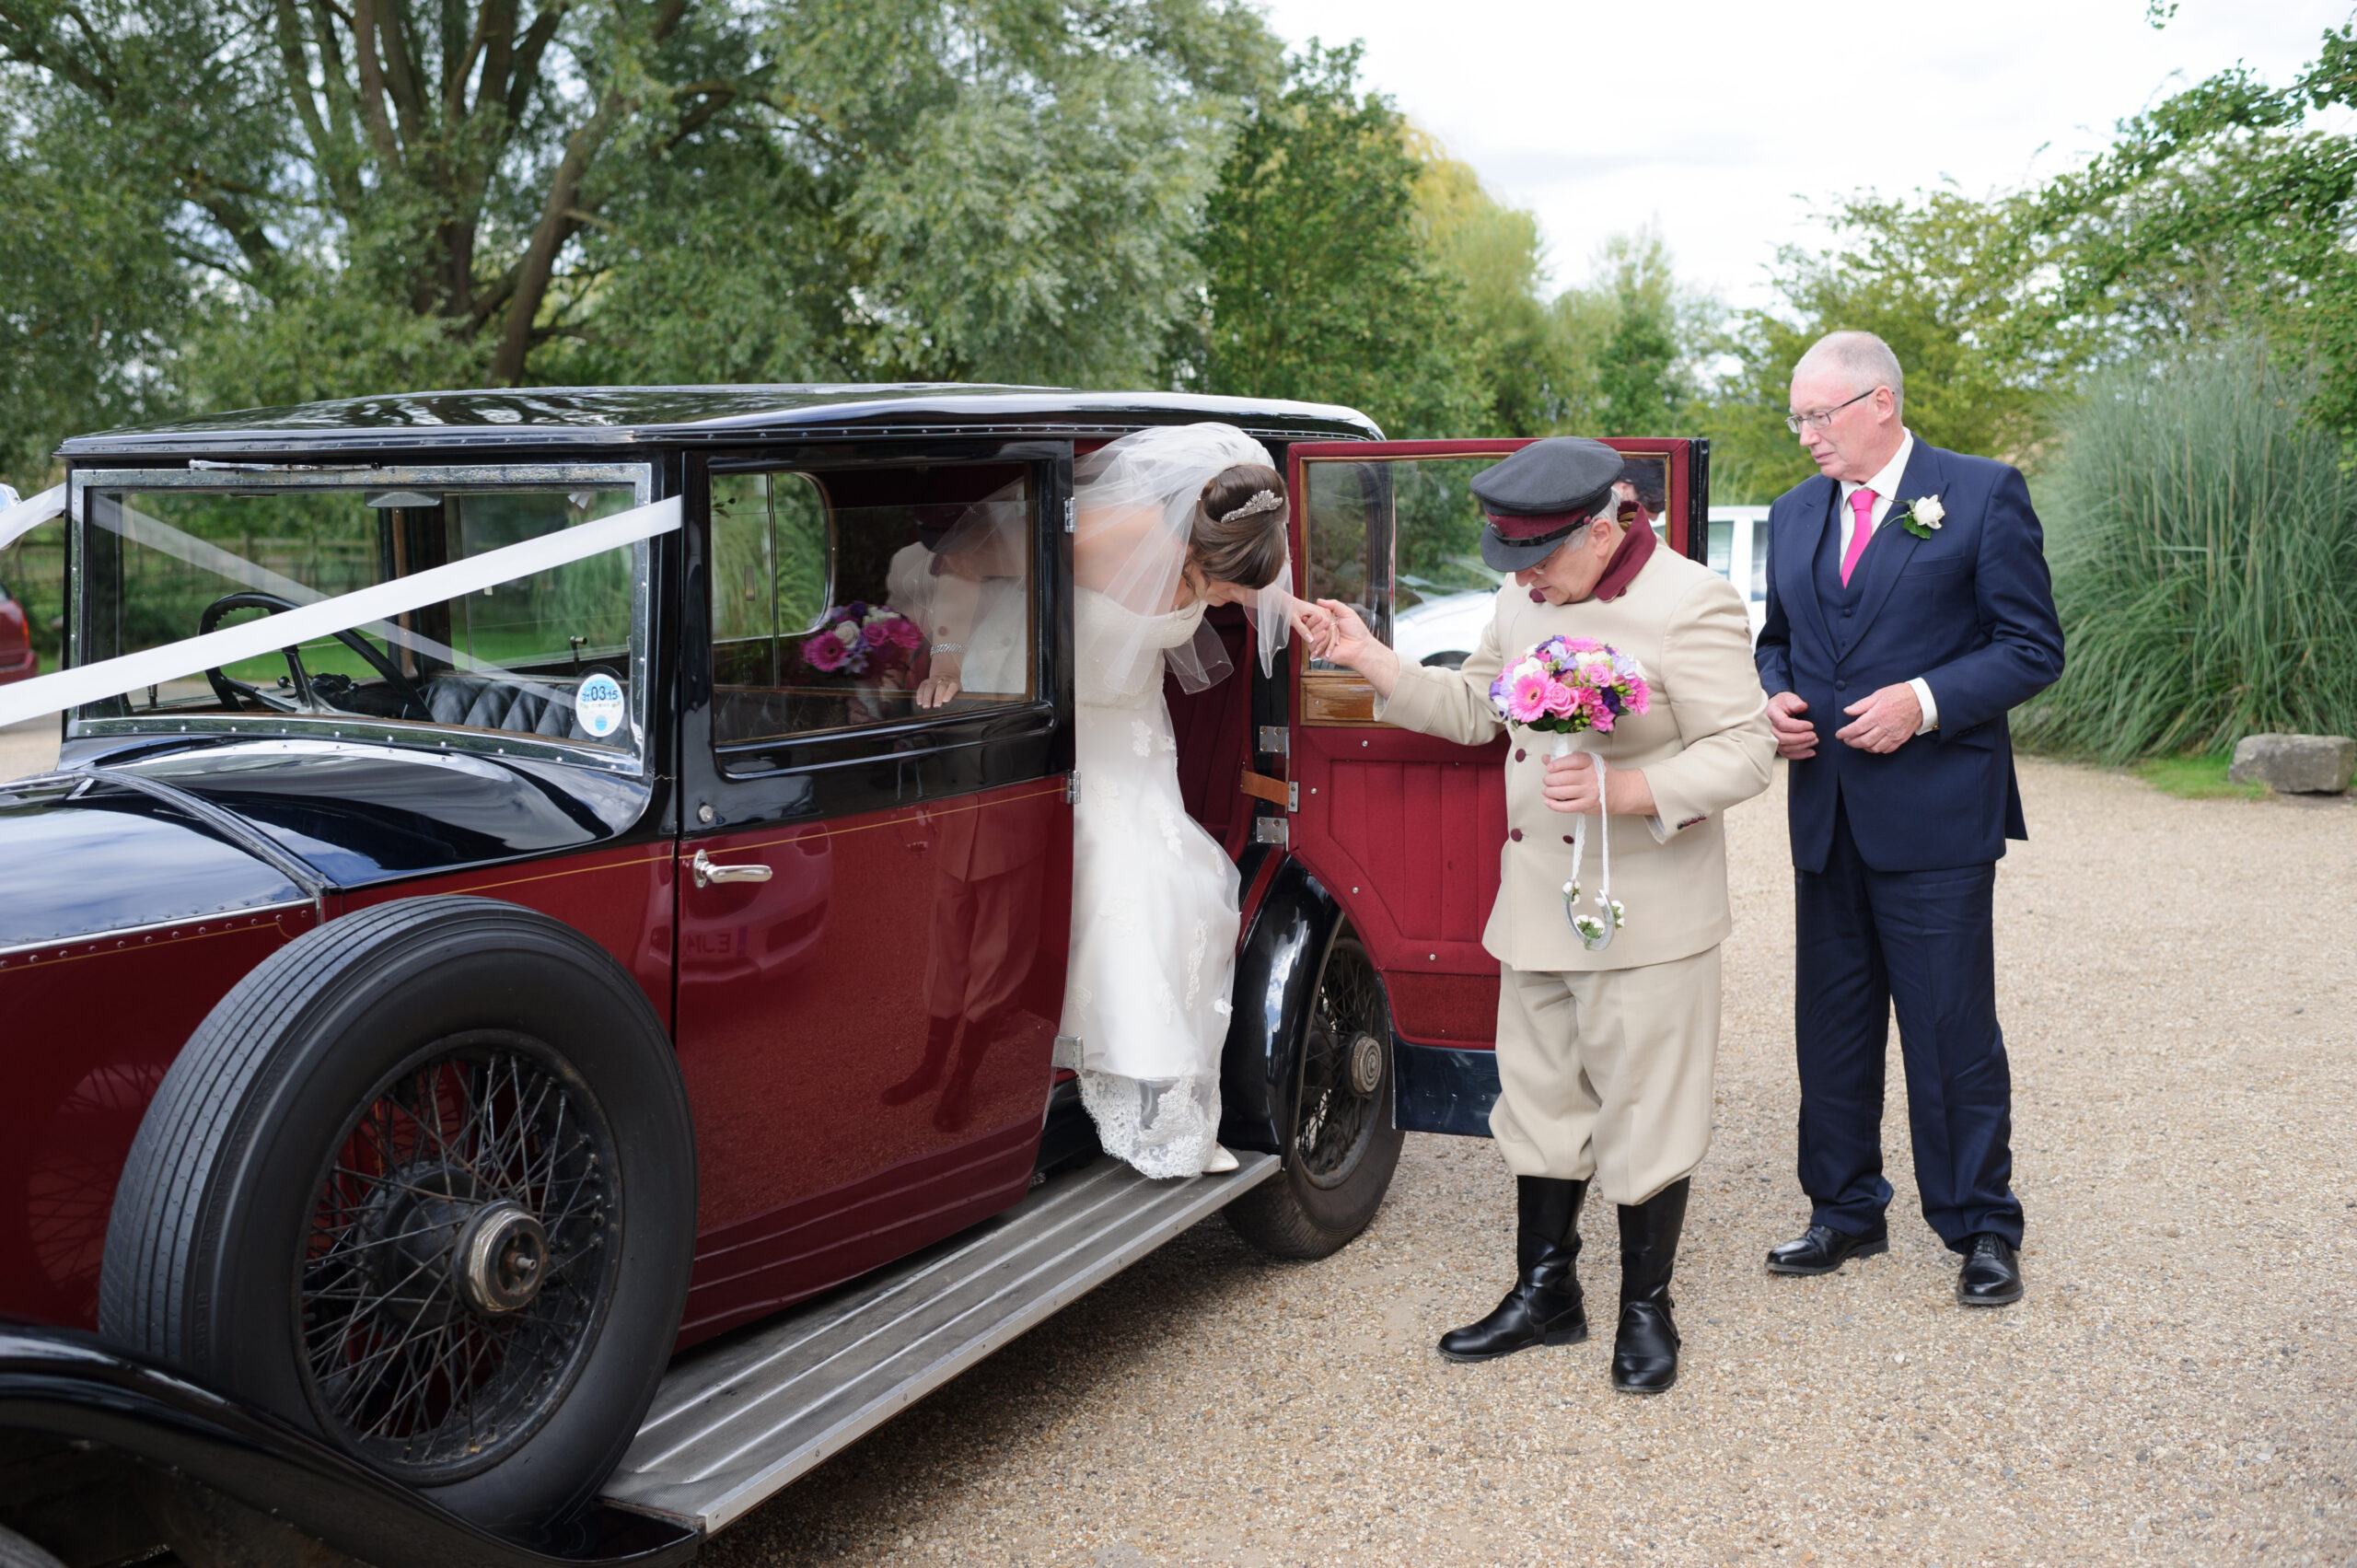 Chauffeur offering bride a hand out of the Rolls Royce